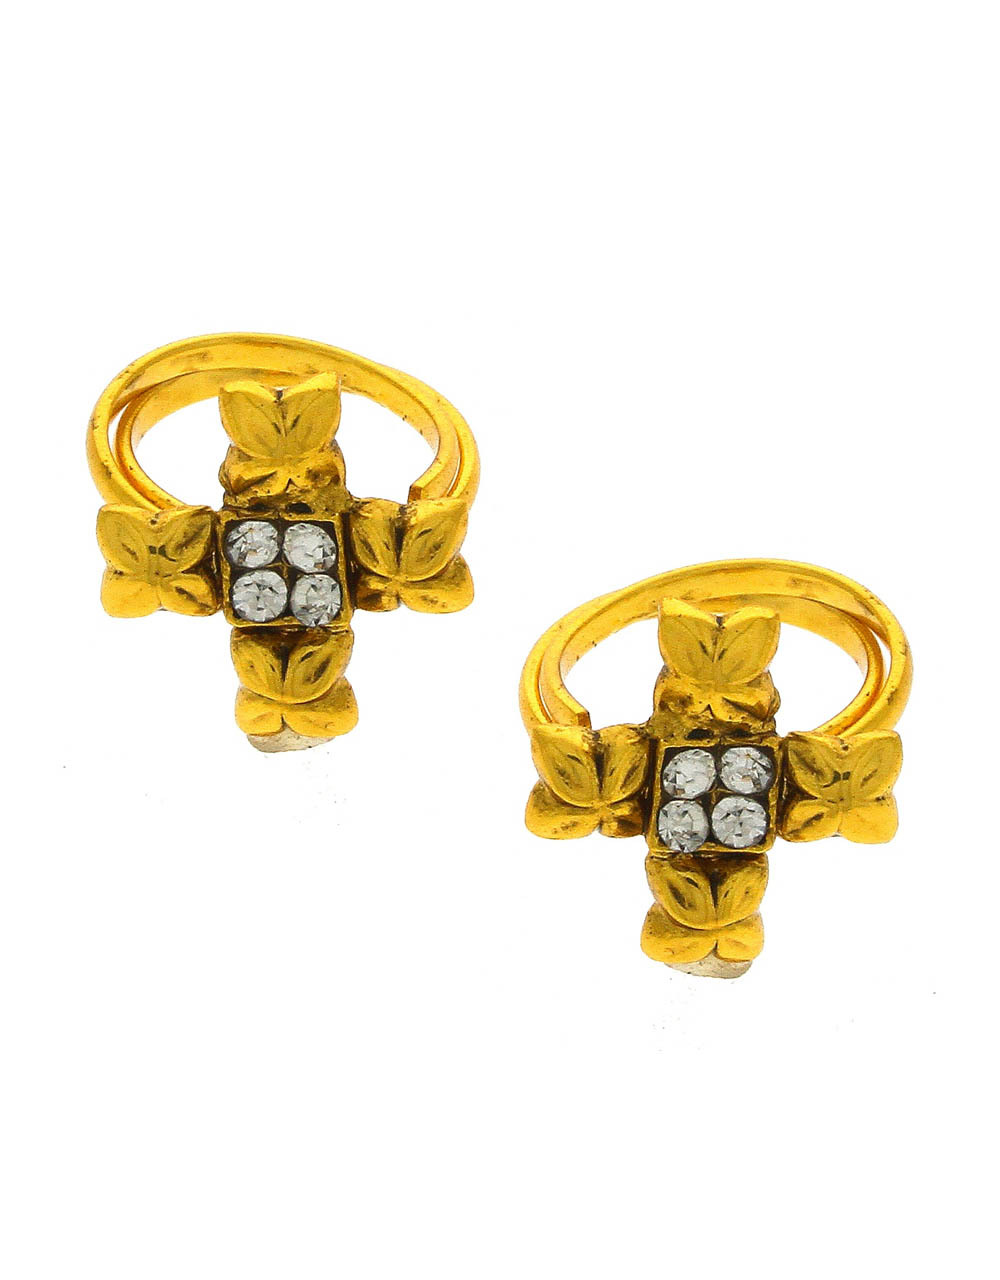 Stylish Golden Toe Rings Encrusted with Sparkling Stones